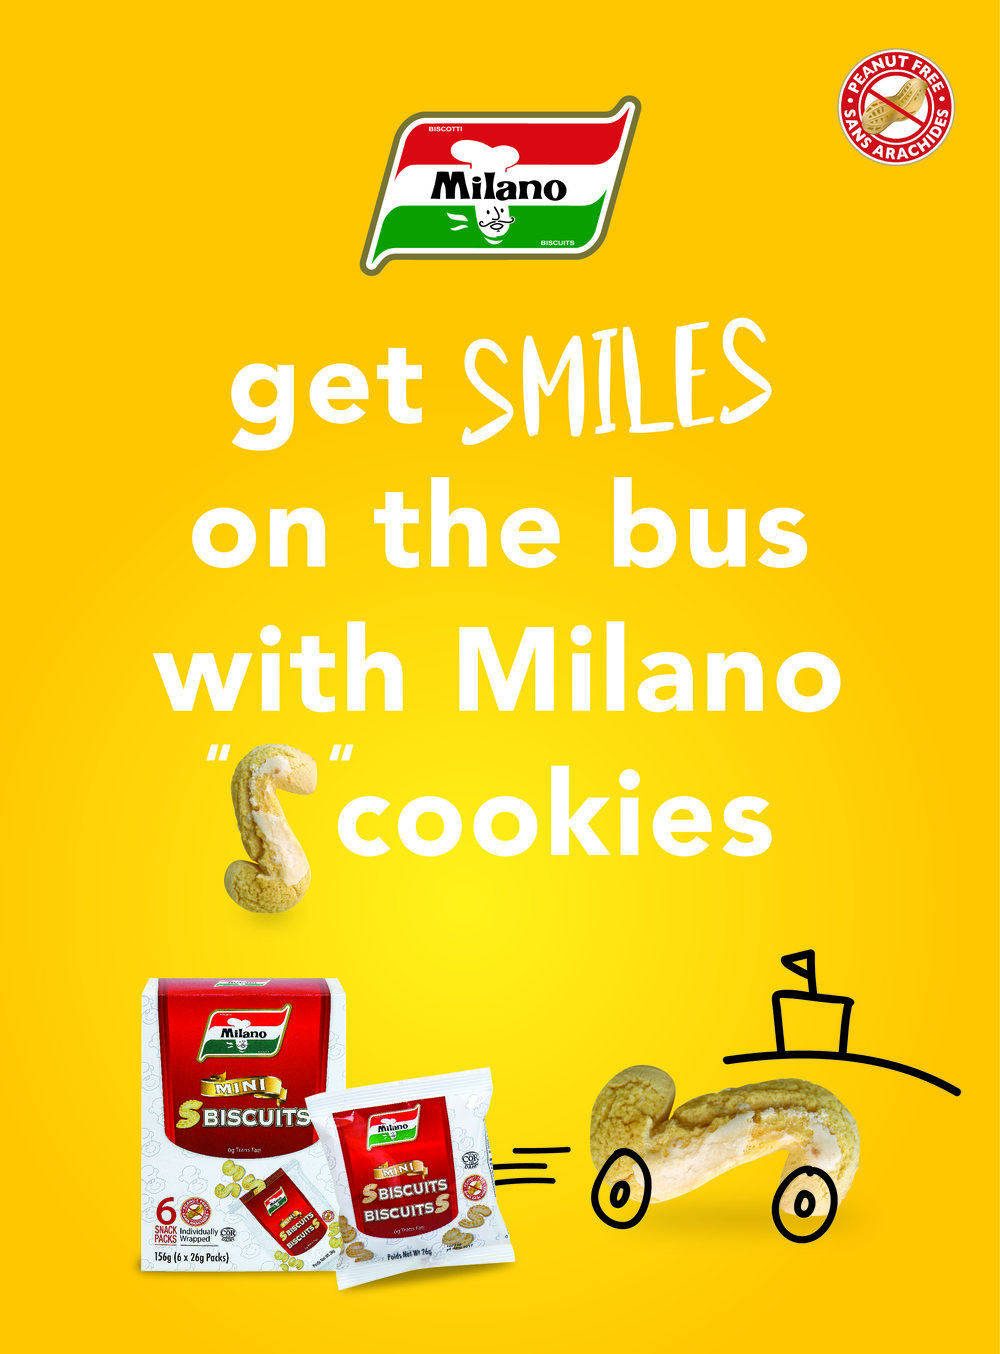 Milano campaign, tagline, and advertising design